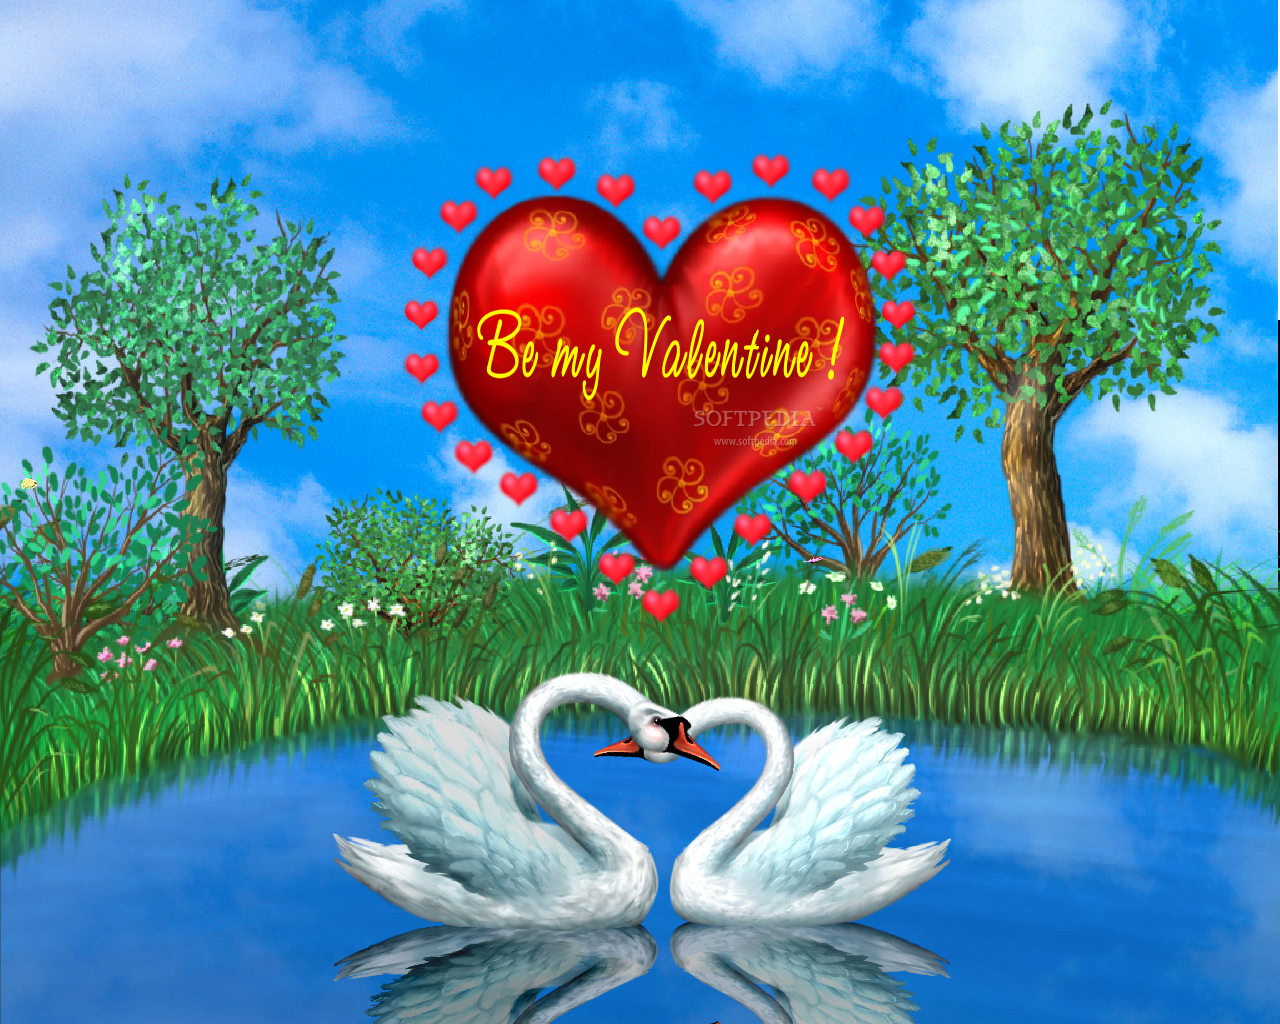 Download Wallpaper I Love You Cartoon - animated-love-wallpapers-for-desktop  You Should Have_58713   .png